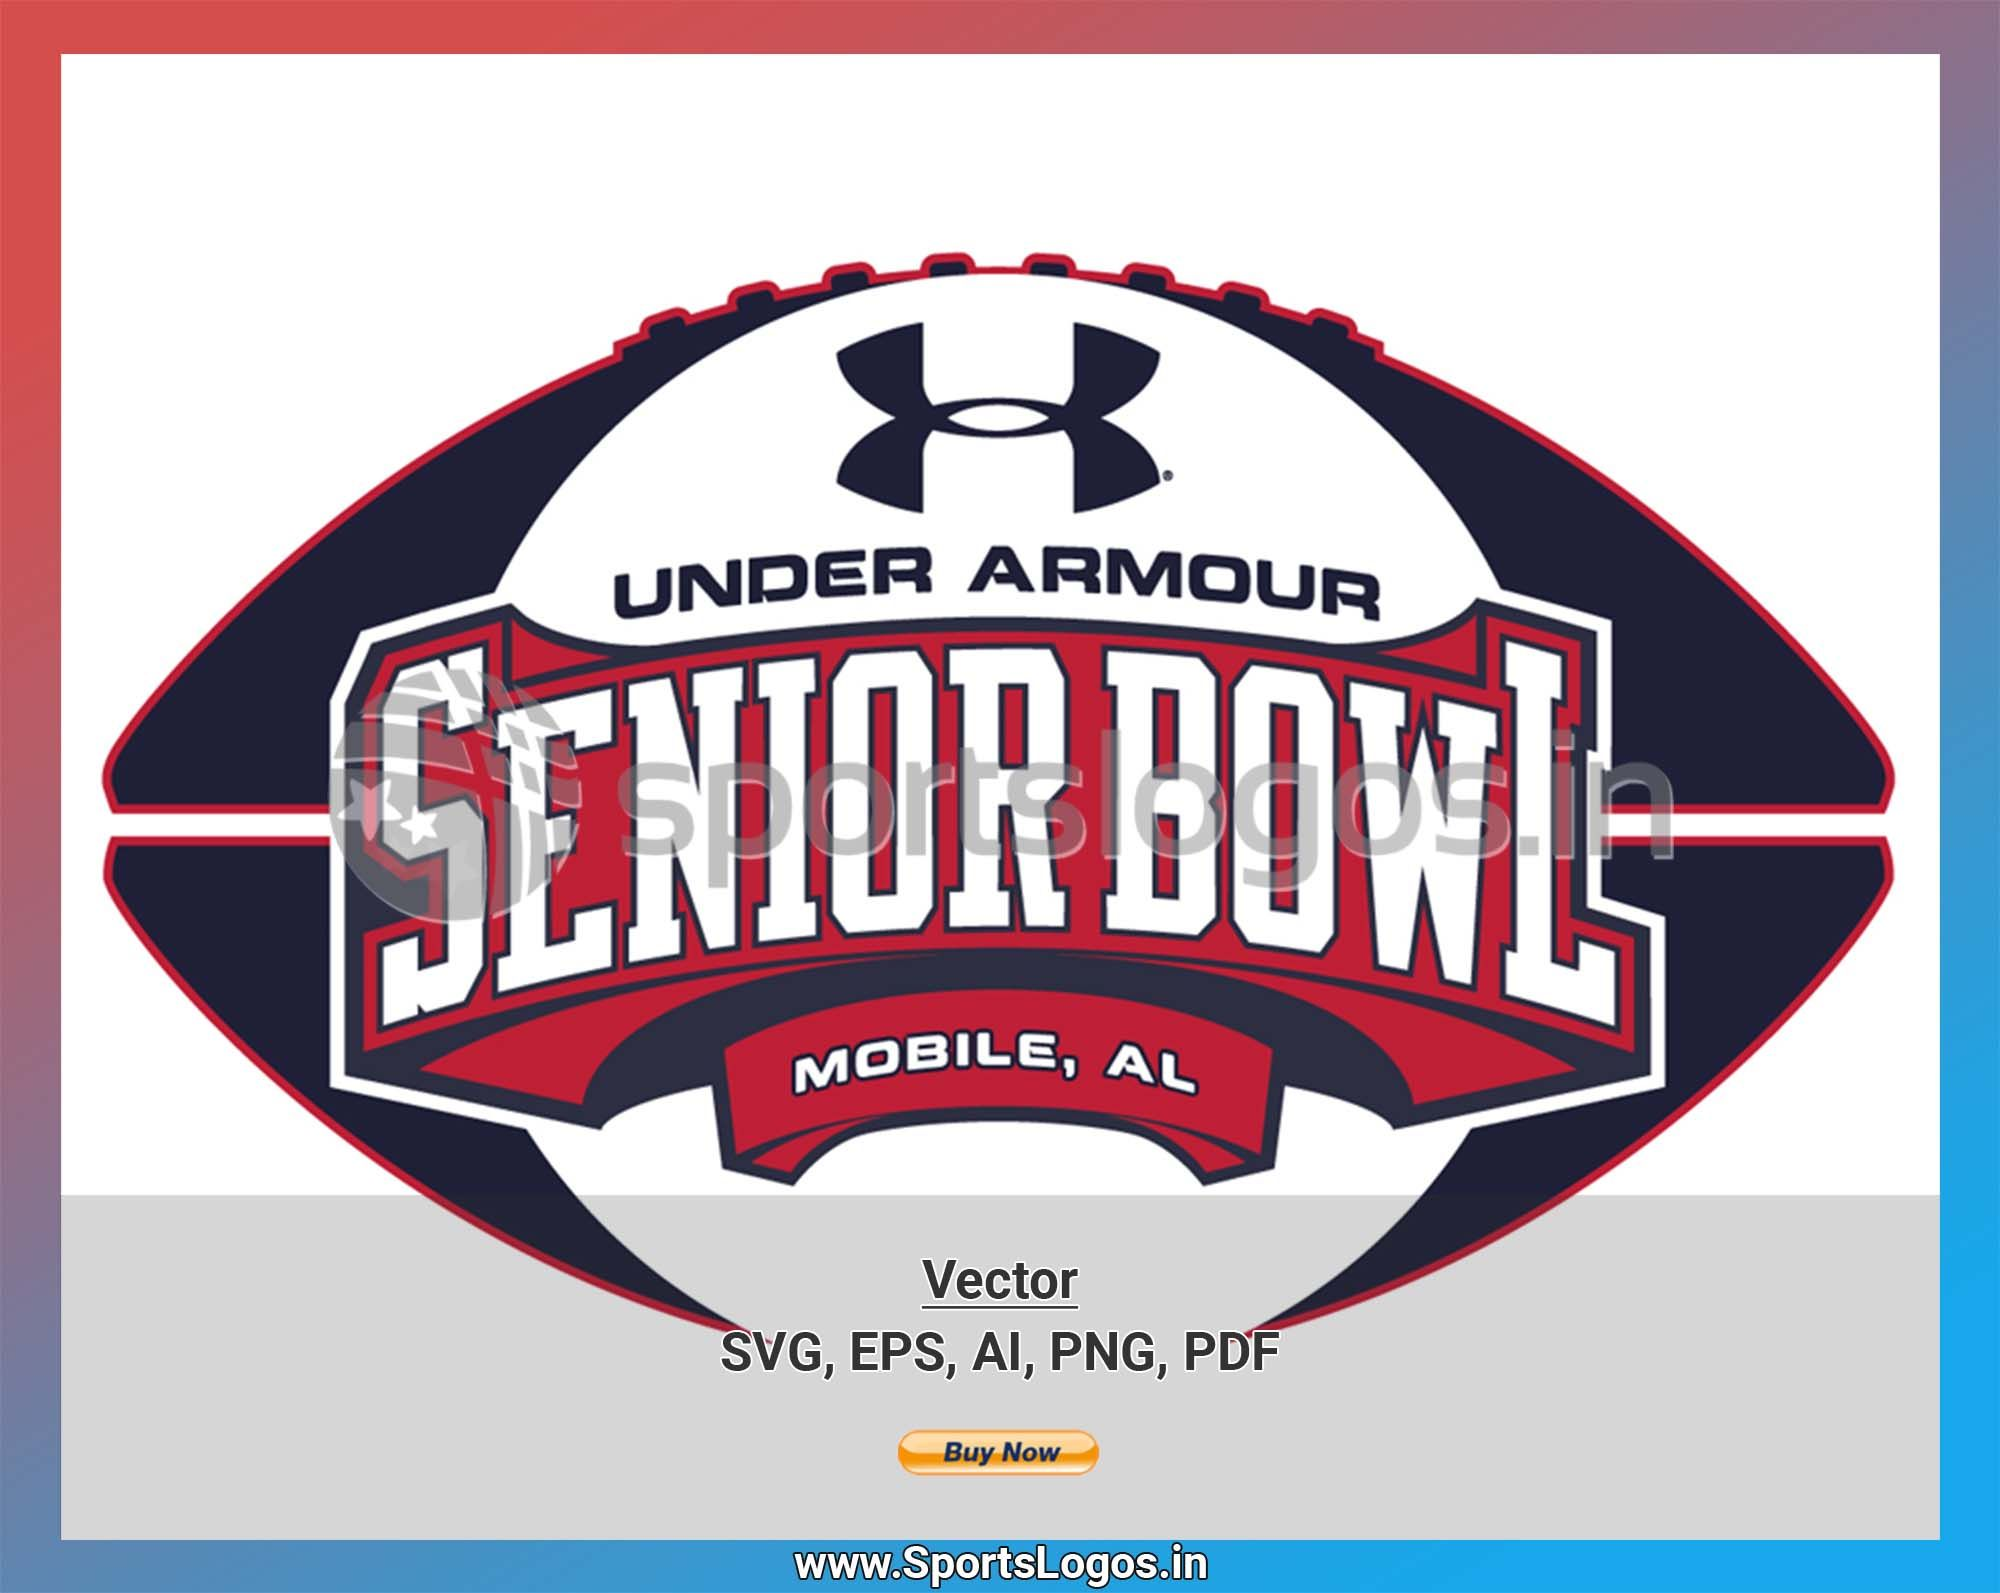 Senior Bowl College Sports Vector SVG Logo in 5 formats